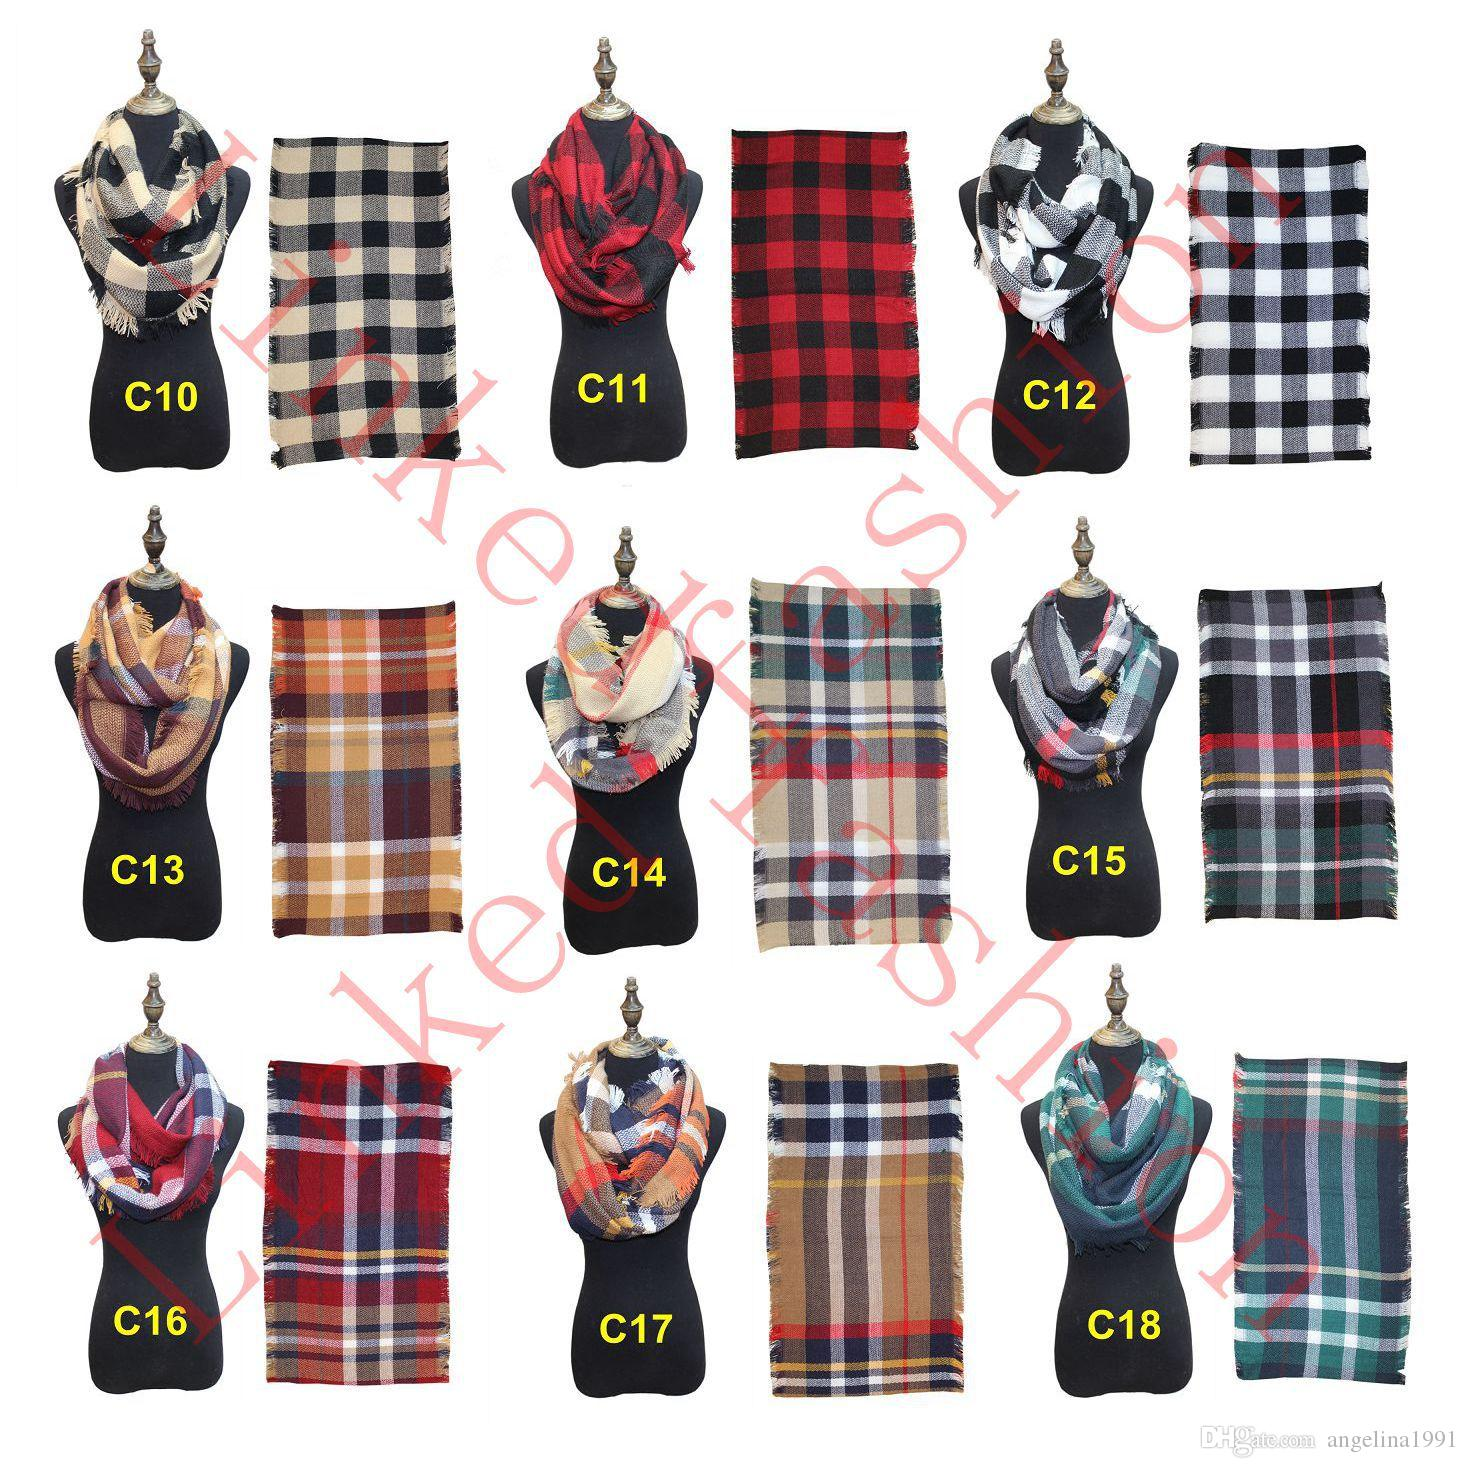 Women's Plaid Scarf Cozy Oversized Tartan Tassel Fashion Wrap Grid Shawl Check Pashmina Cashmere scarves Lattice Neck Stole Blanket DHL free